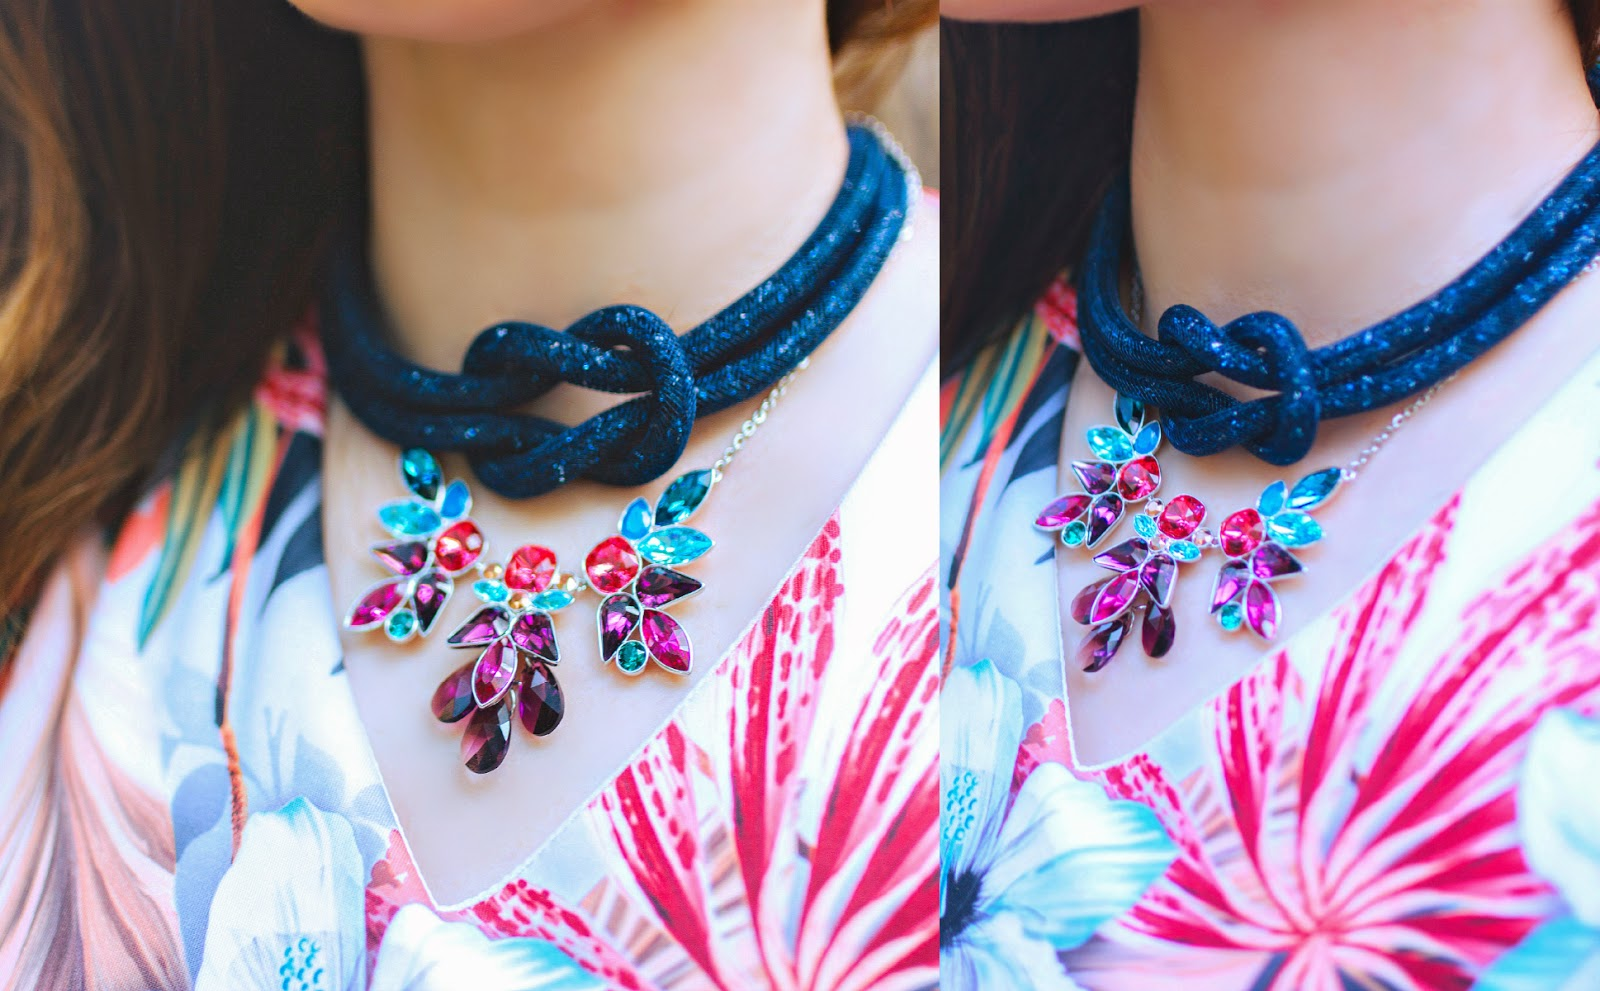 Swarovski Stardust Knot Necklace, Cardinal Floral Necklace,